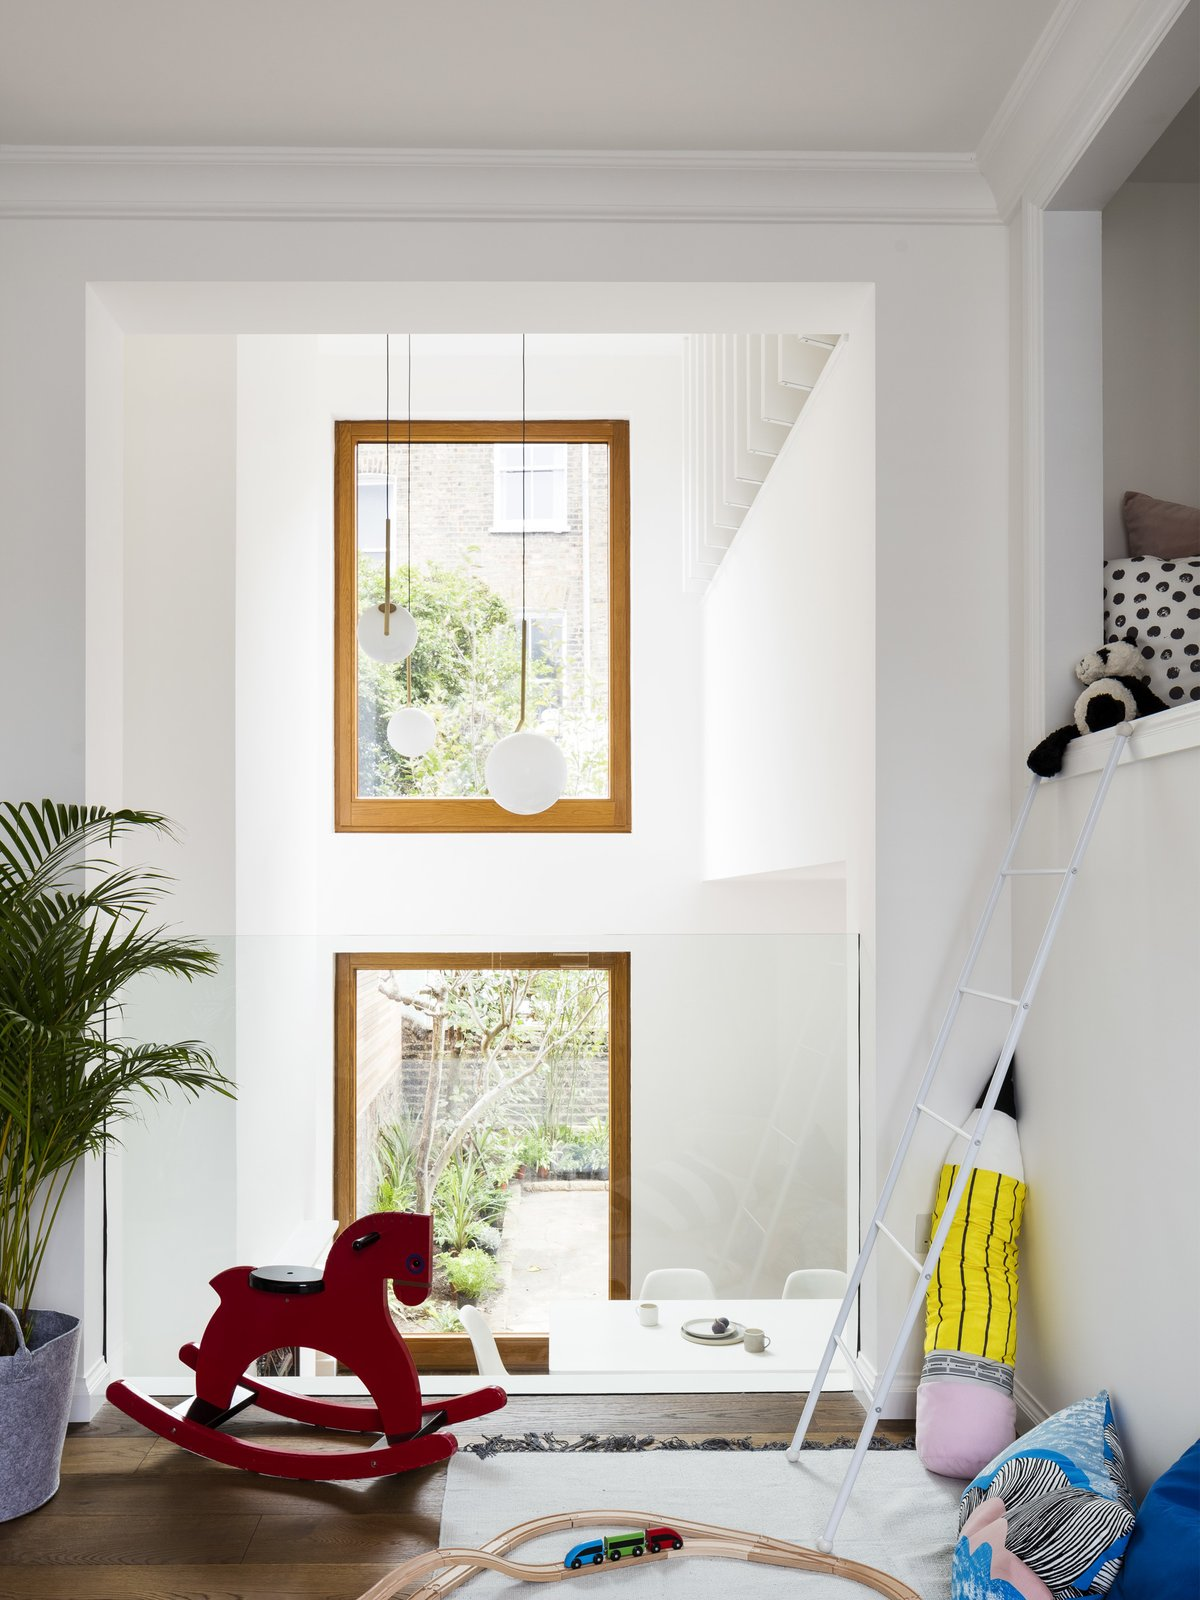 A lofted playroom overlooks the main living space.  A seamless piece of glass provides a discrete barrier. Tagged: Kids Room, Medium Hardwood Floor, Toddler Age, Rockers, Neutral Gender, and Playroom.  Best Photos from A Sleek Renovation in London Ushers Light Into a Family Home